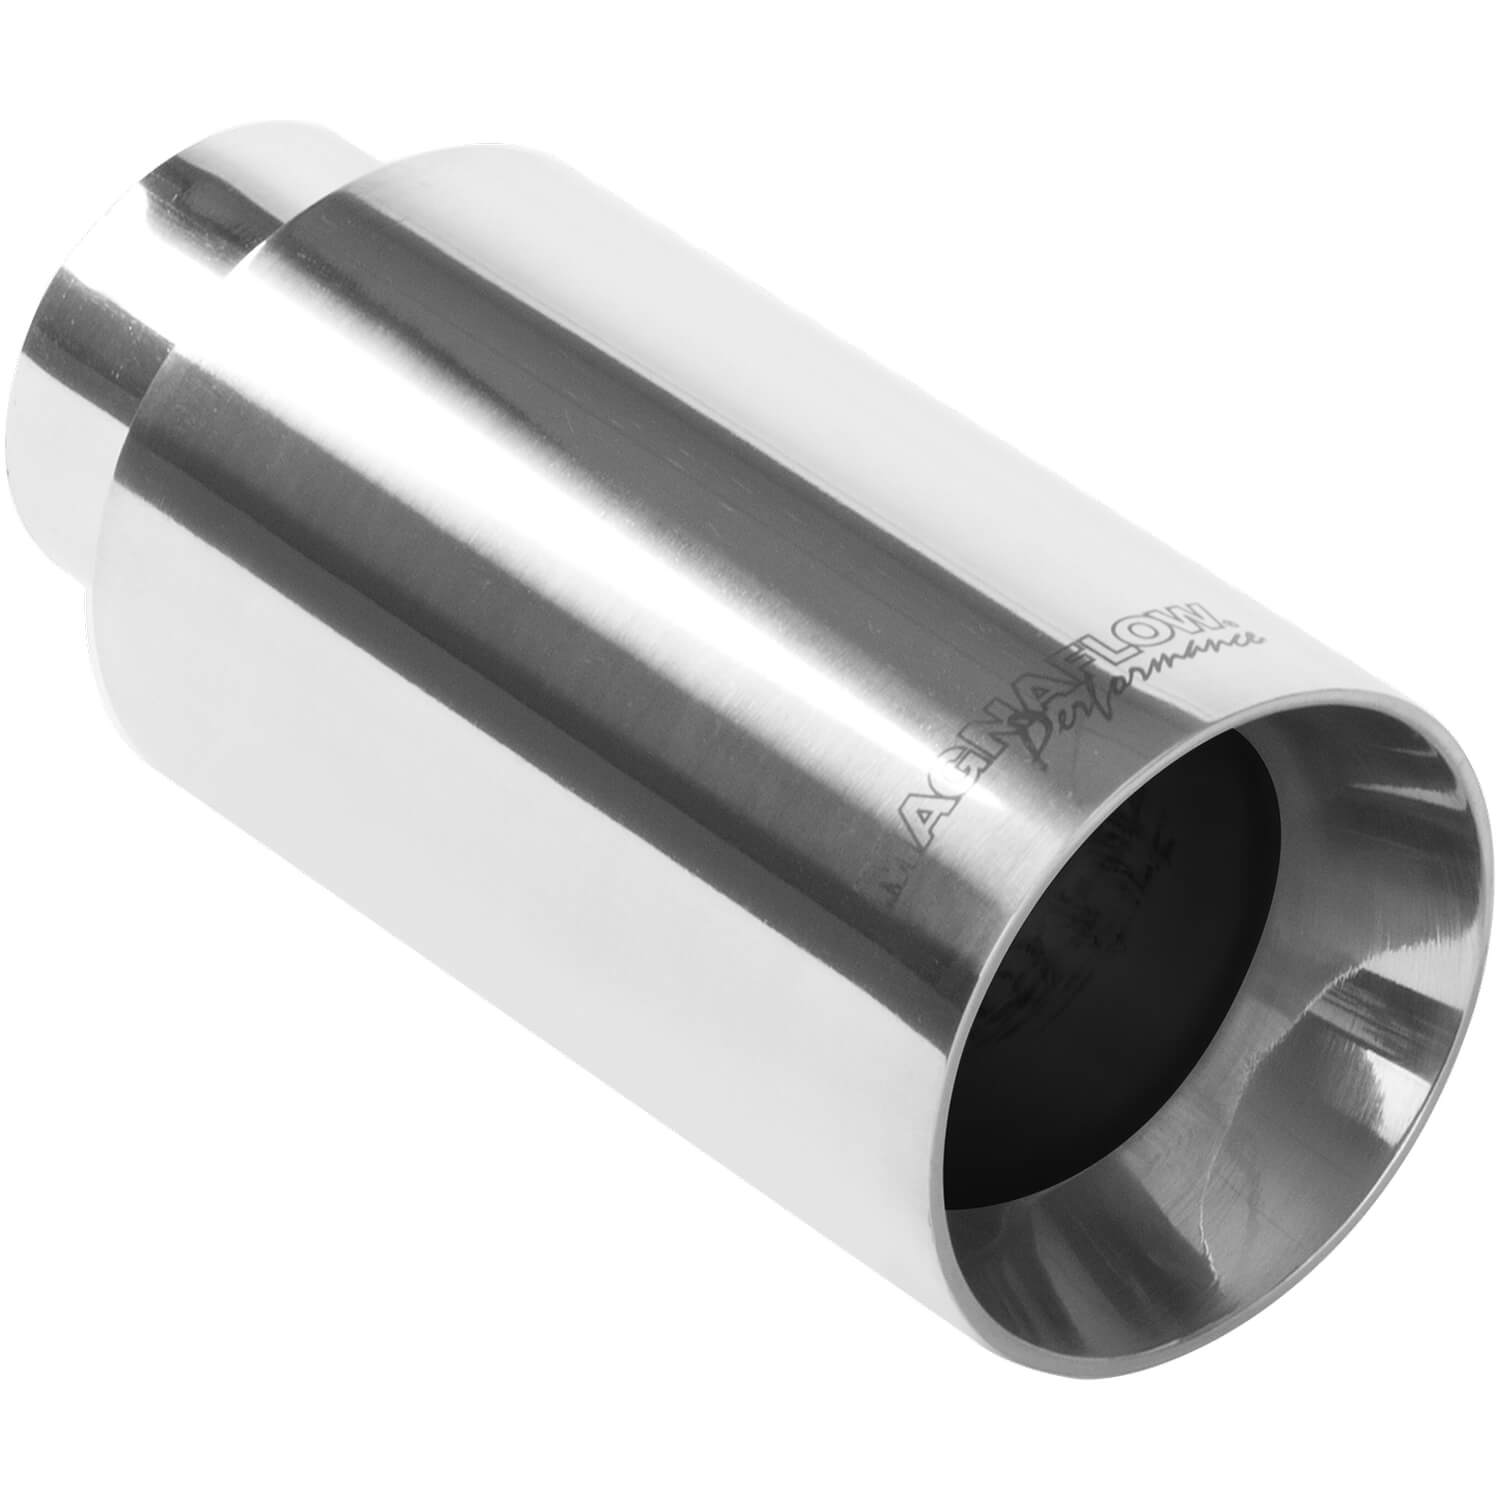 Magnaflow 35123 - Magnaflow Polished Stainless Steel Weld-On Exhaust Tips